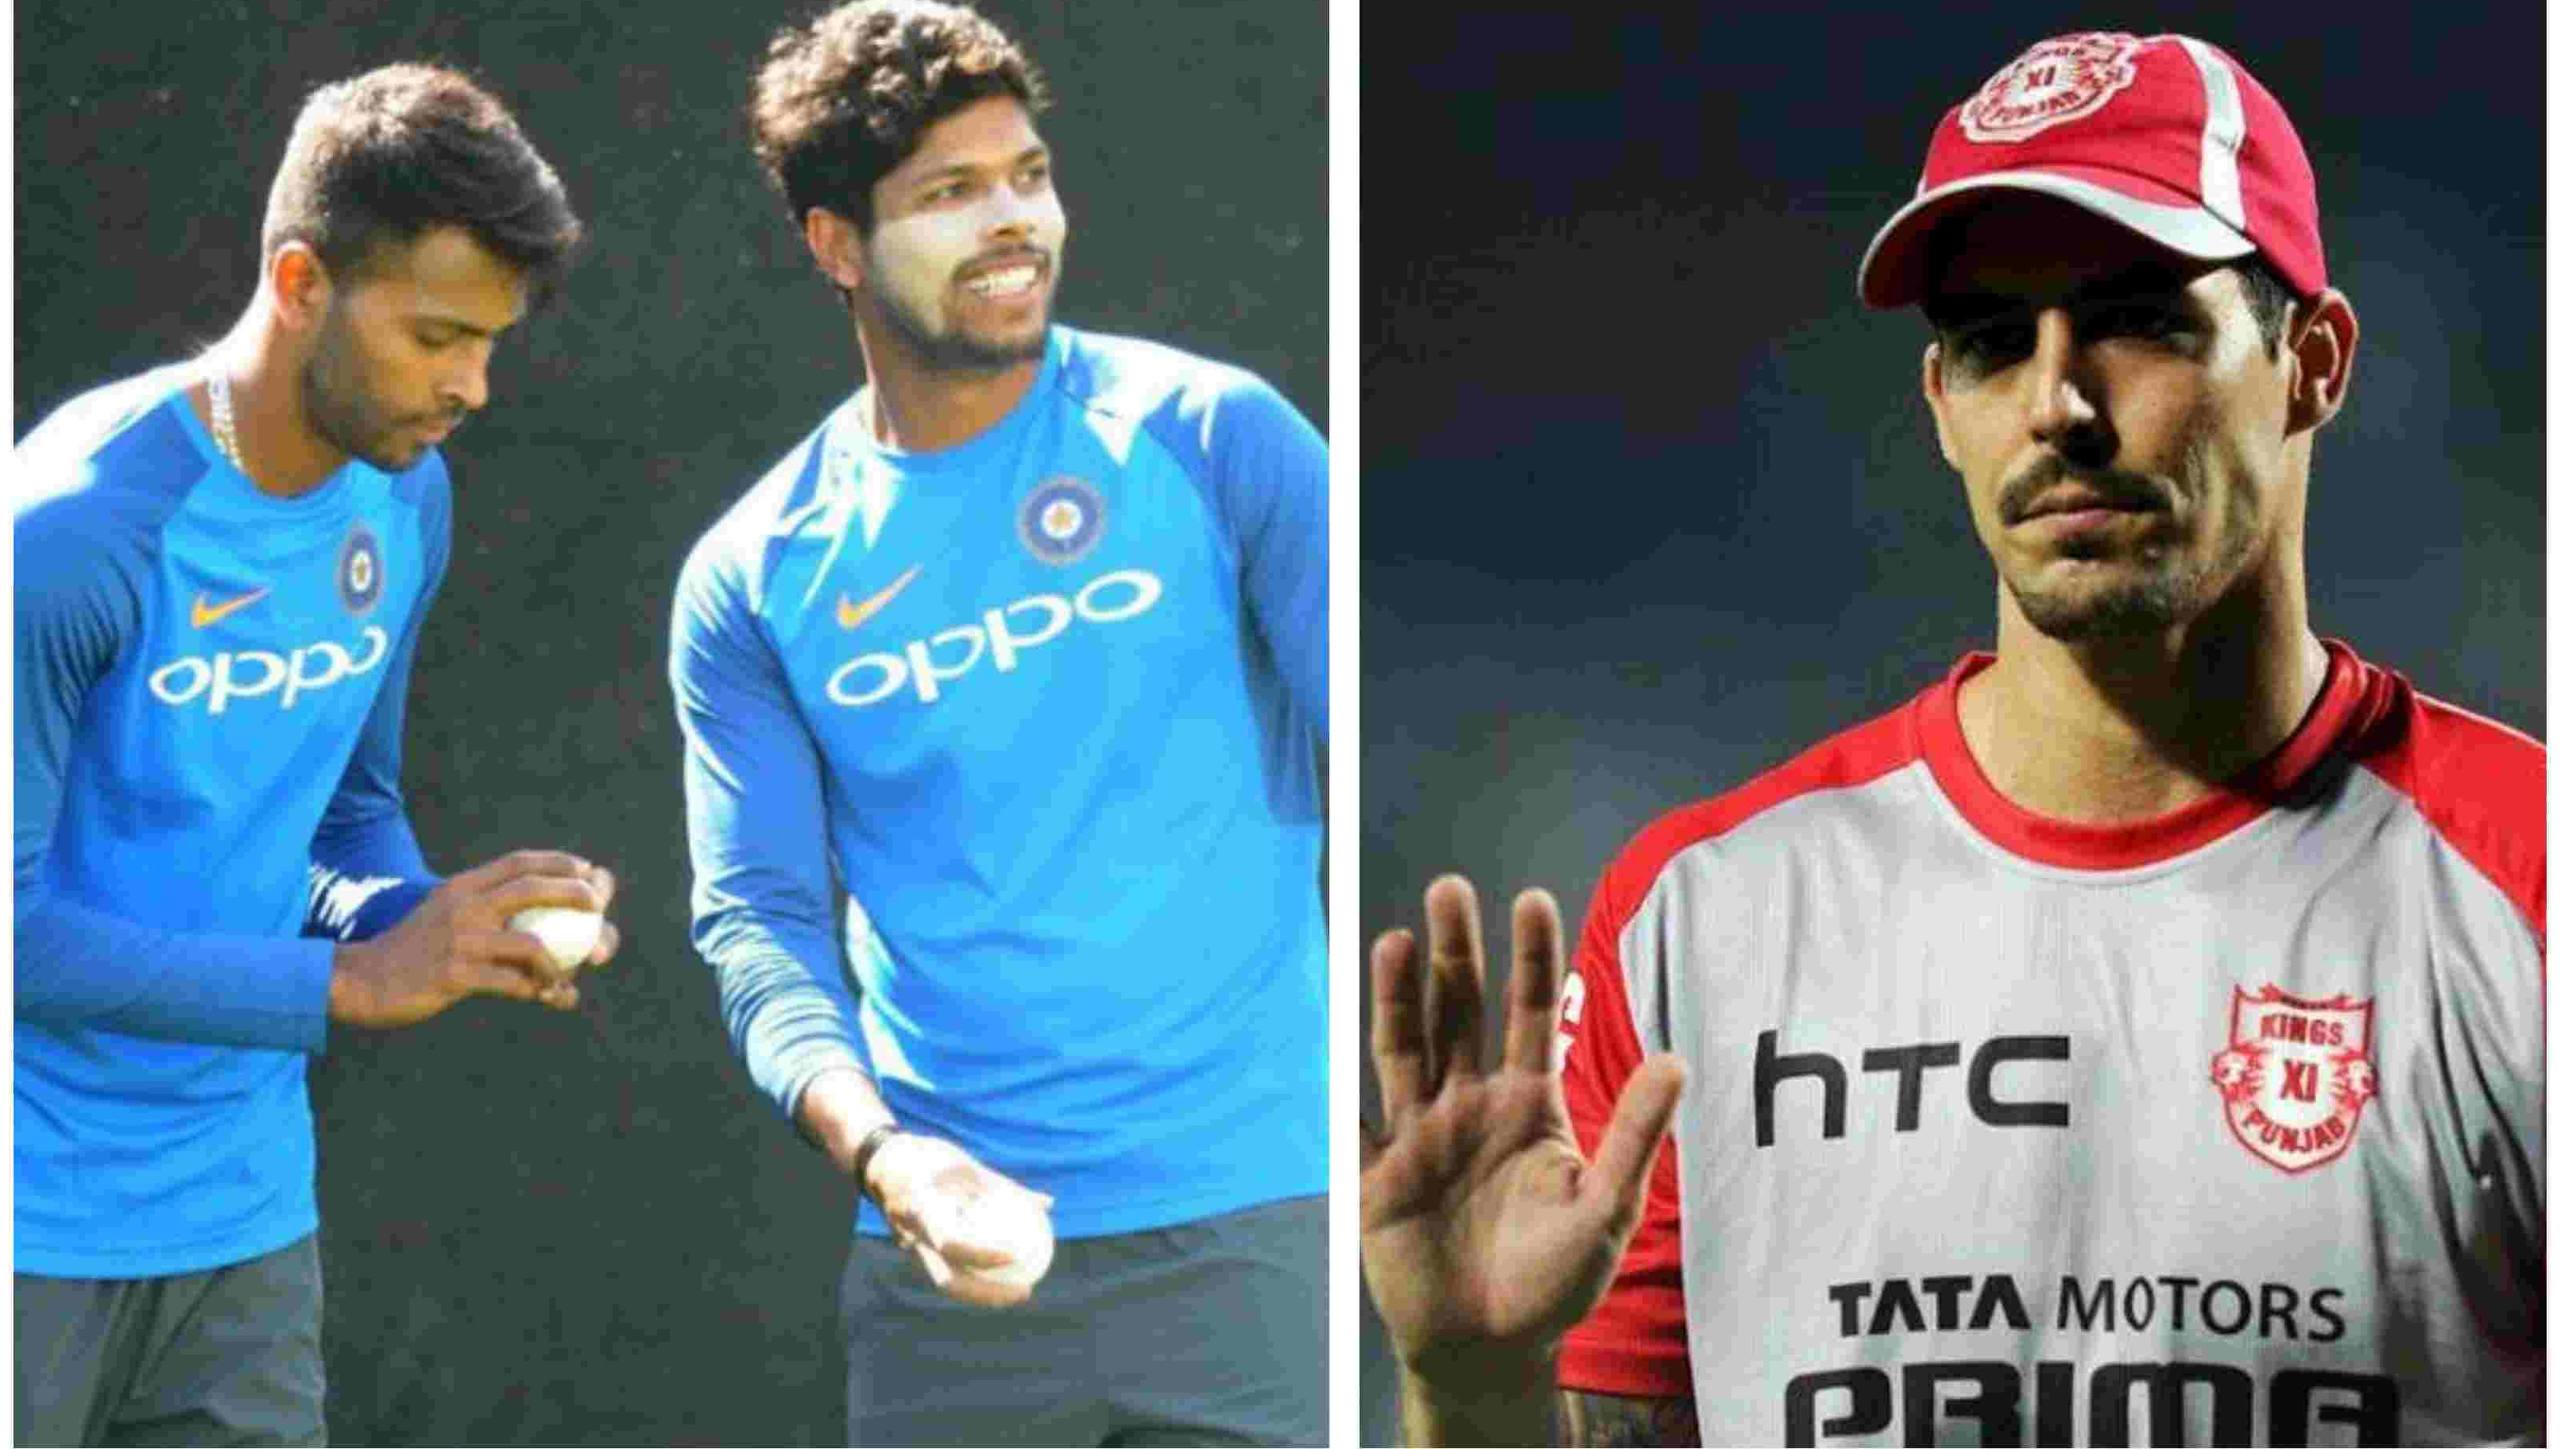 Umesh Yadav, Hardik Pandya will play a key role for India against Pakistan at Asia Cup, reckons Mitchell Johnson